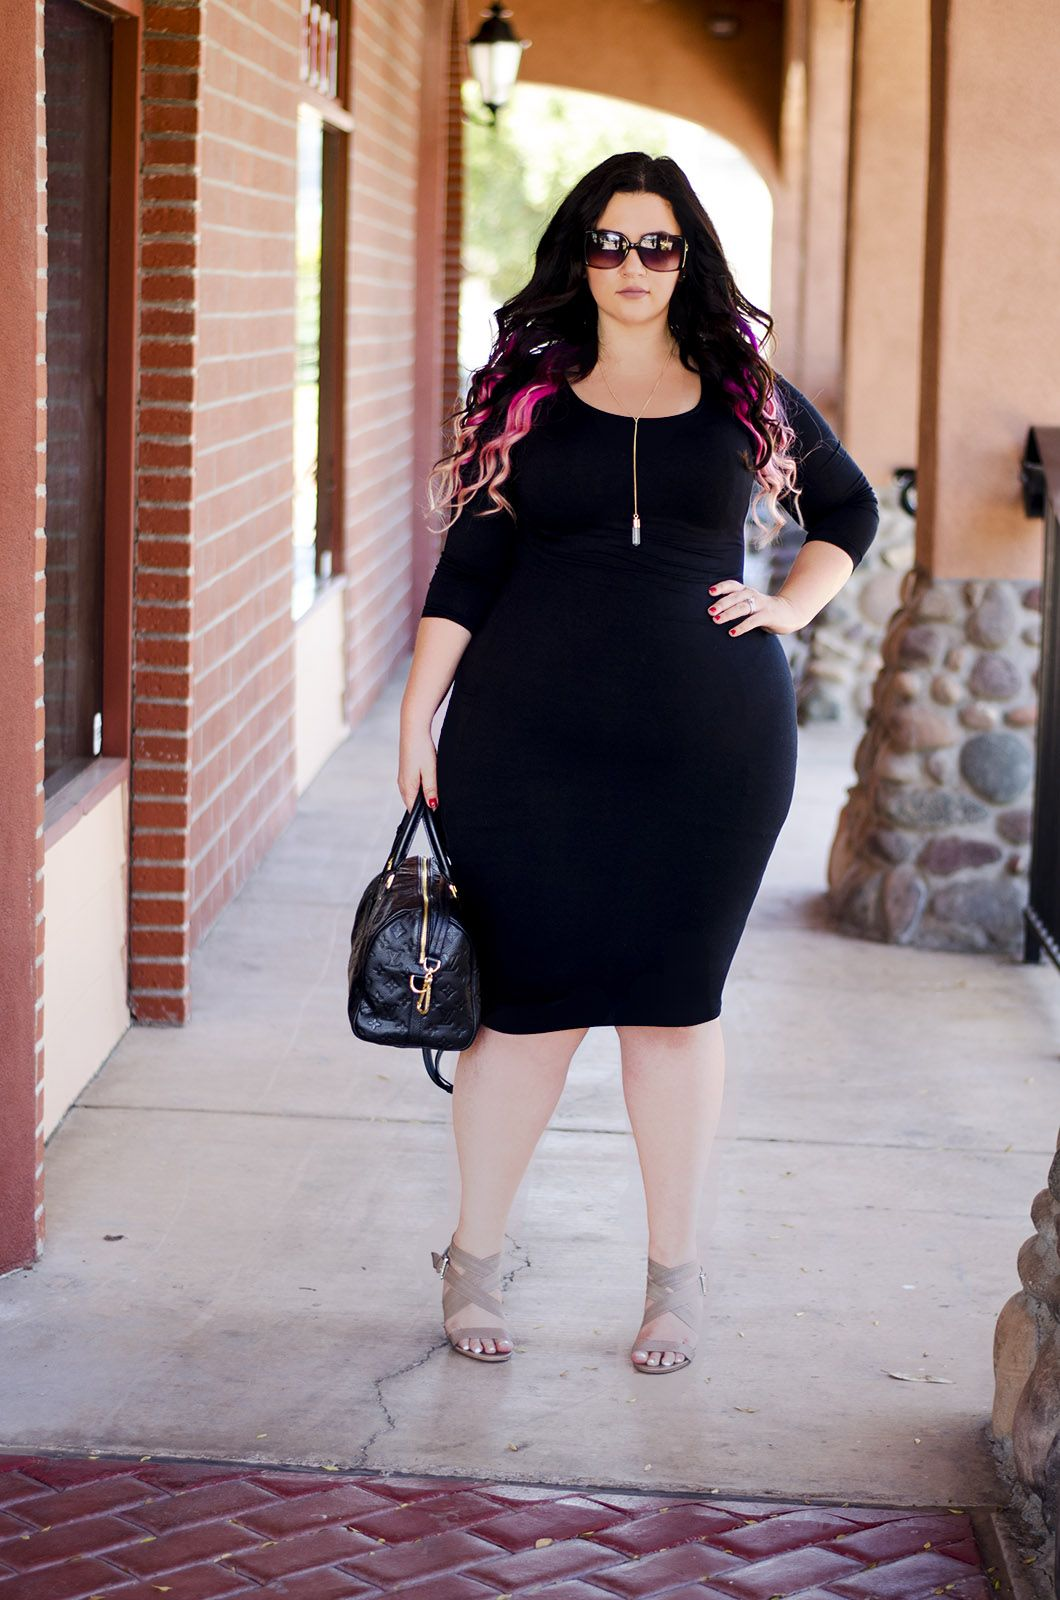 Bandage bodycon dresses 0 celebrities 1639 get lucky extra 50 0 - Black Bodycon Dress Nude Heels Greige Lipstick Sunglasses Sexy Tight Ootd Plus Size Crystal Coons Sometimesglam